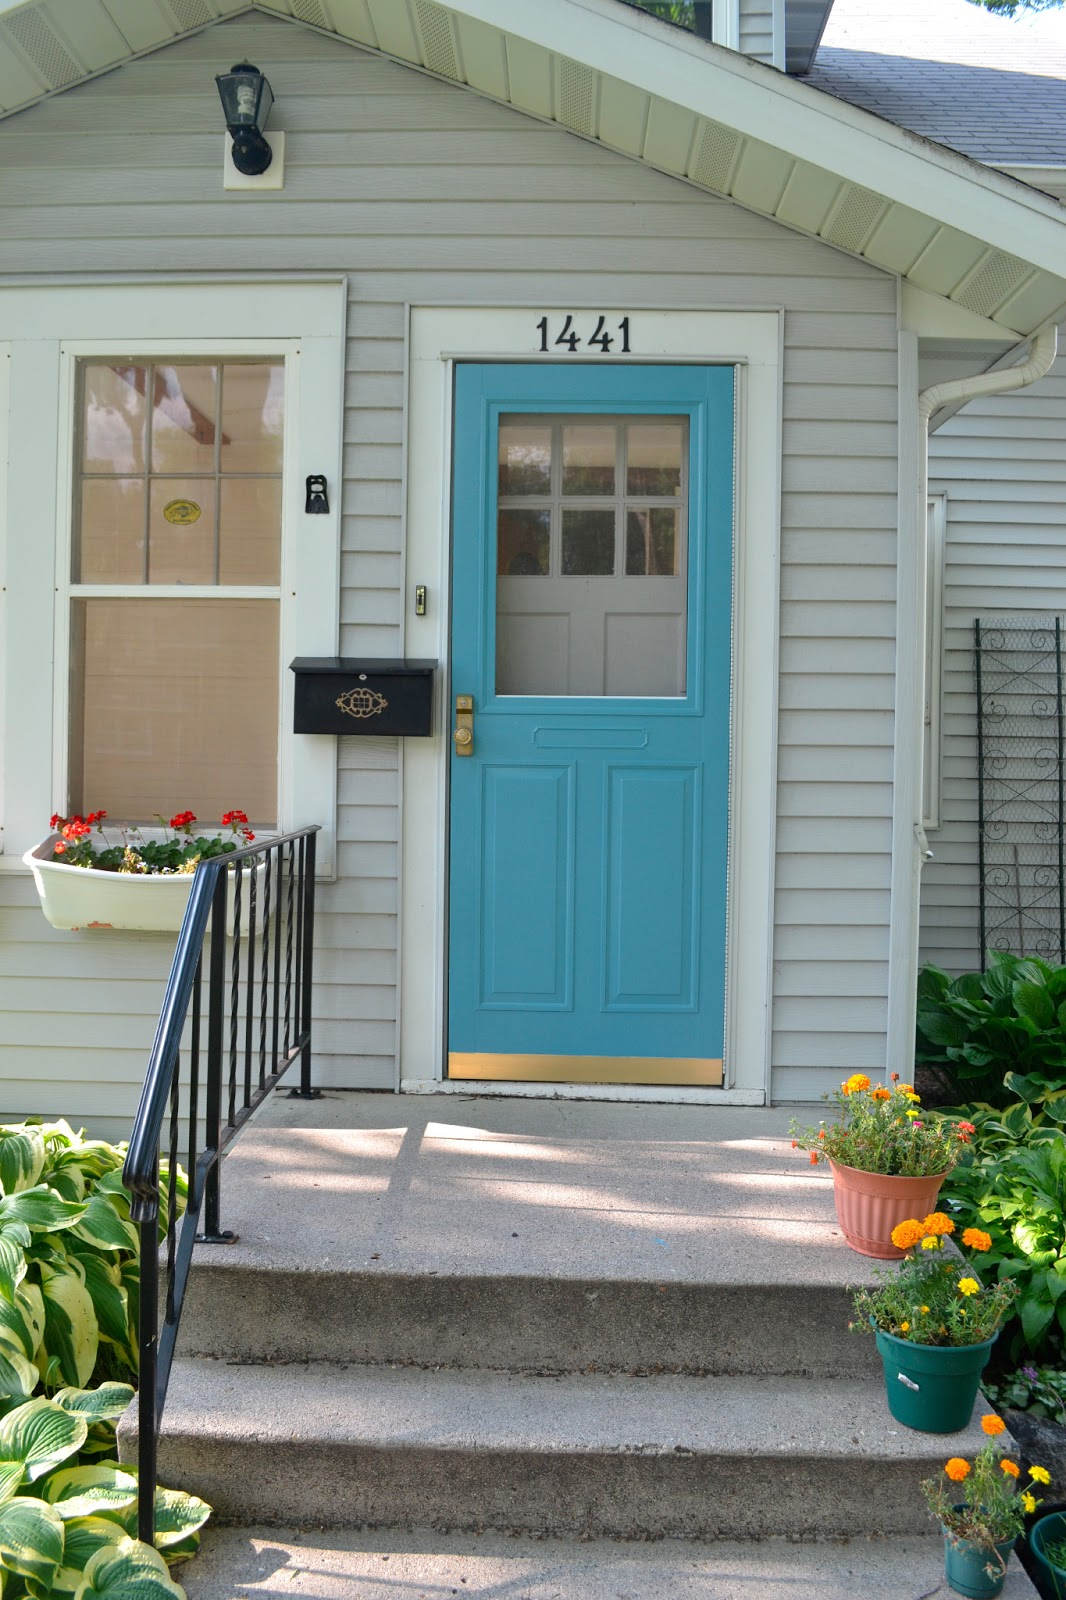 Our House In The Middle Of Our Street A Colorful Entrance